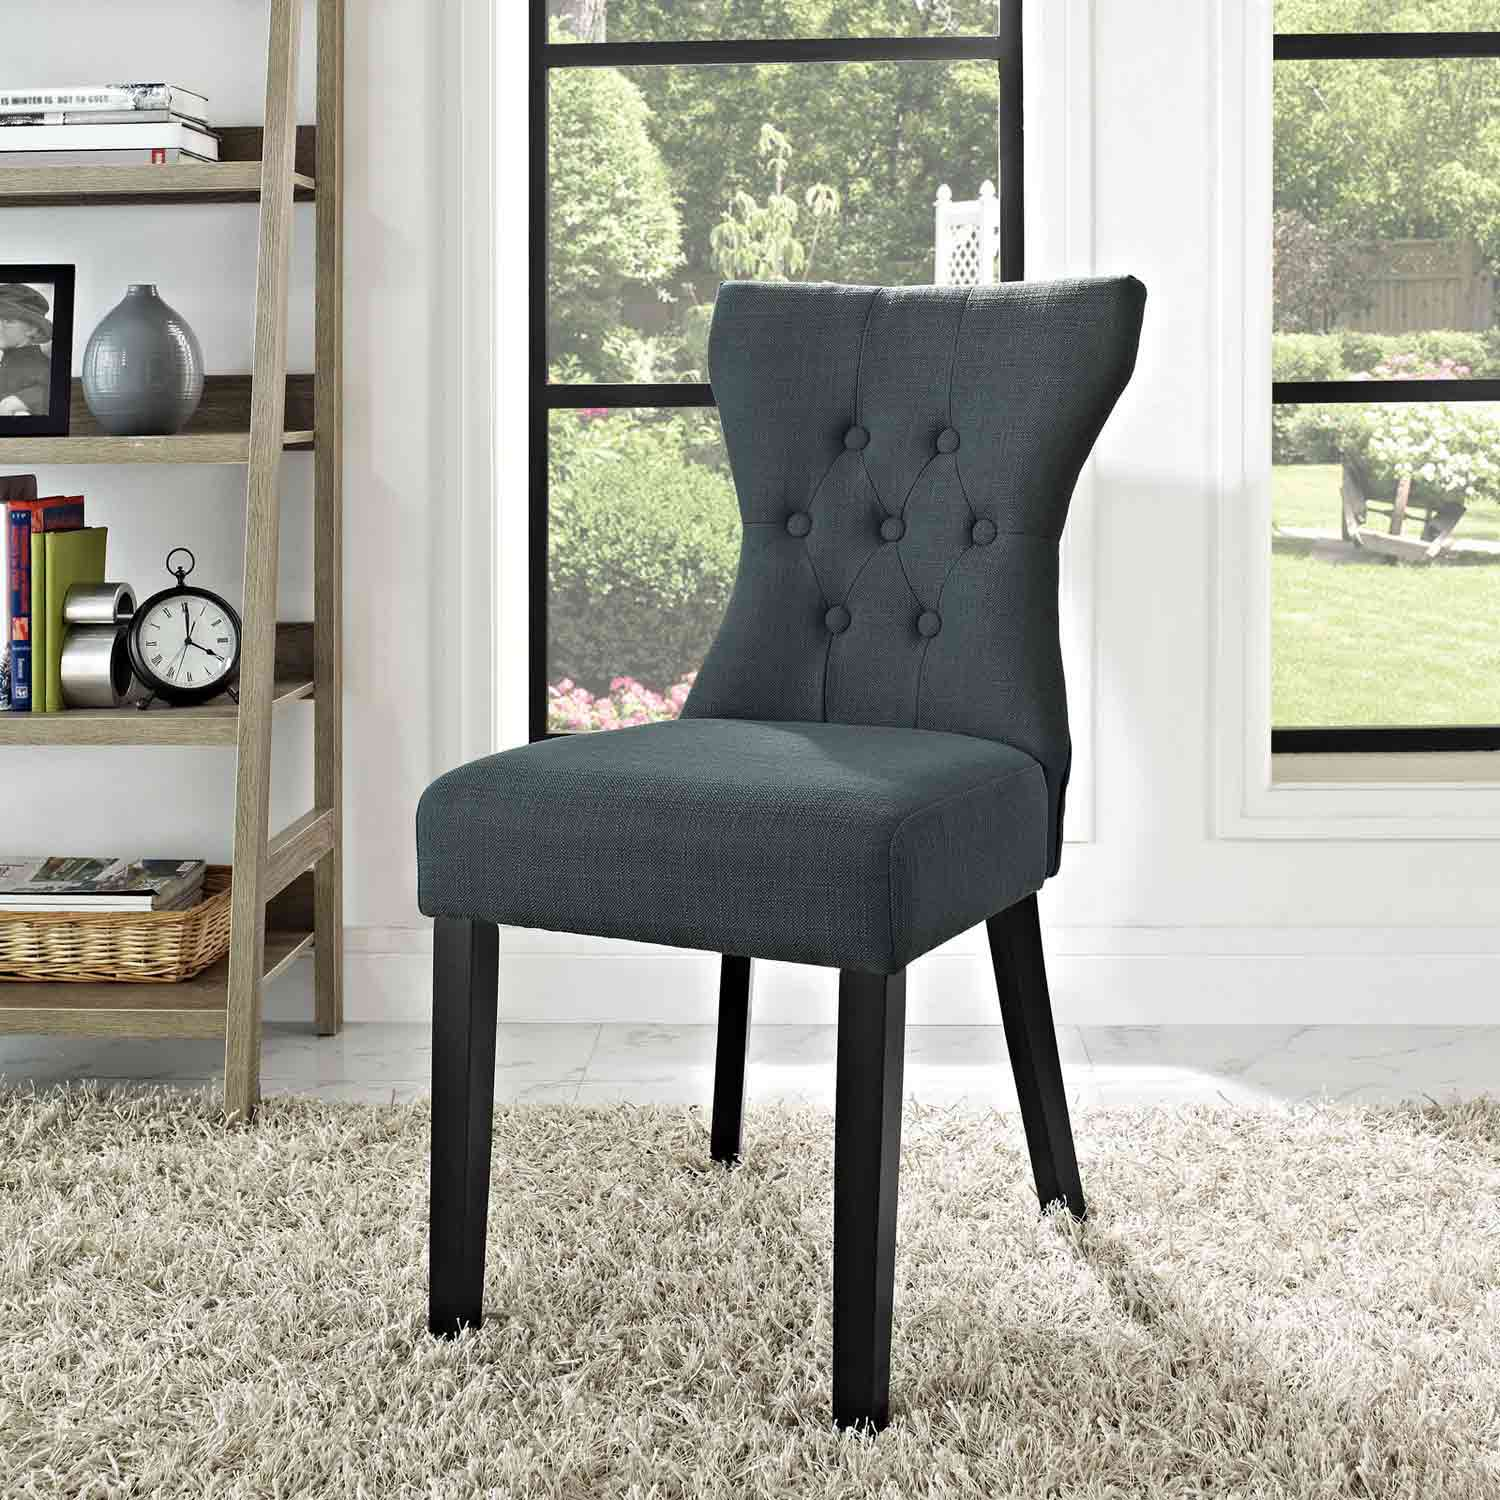 Modway Silhouette Dining Side Chair - Gray